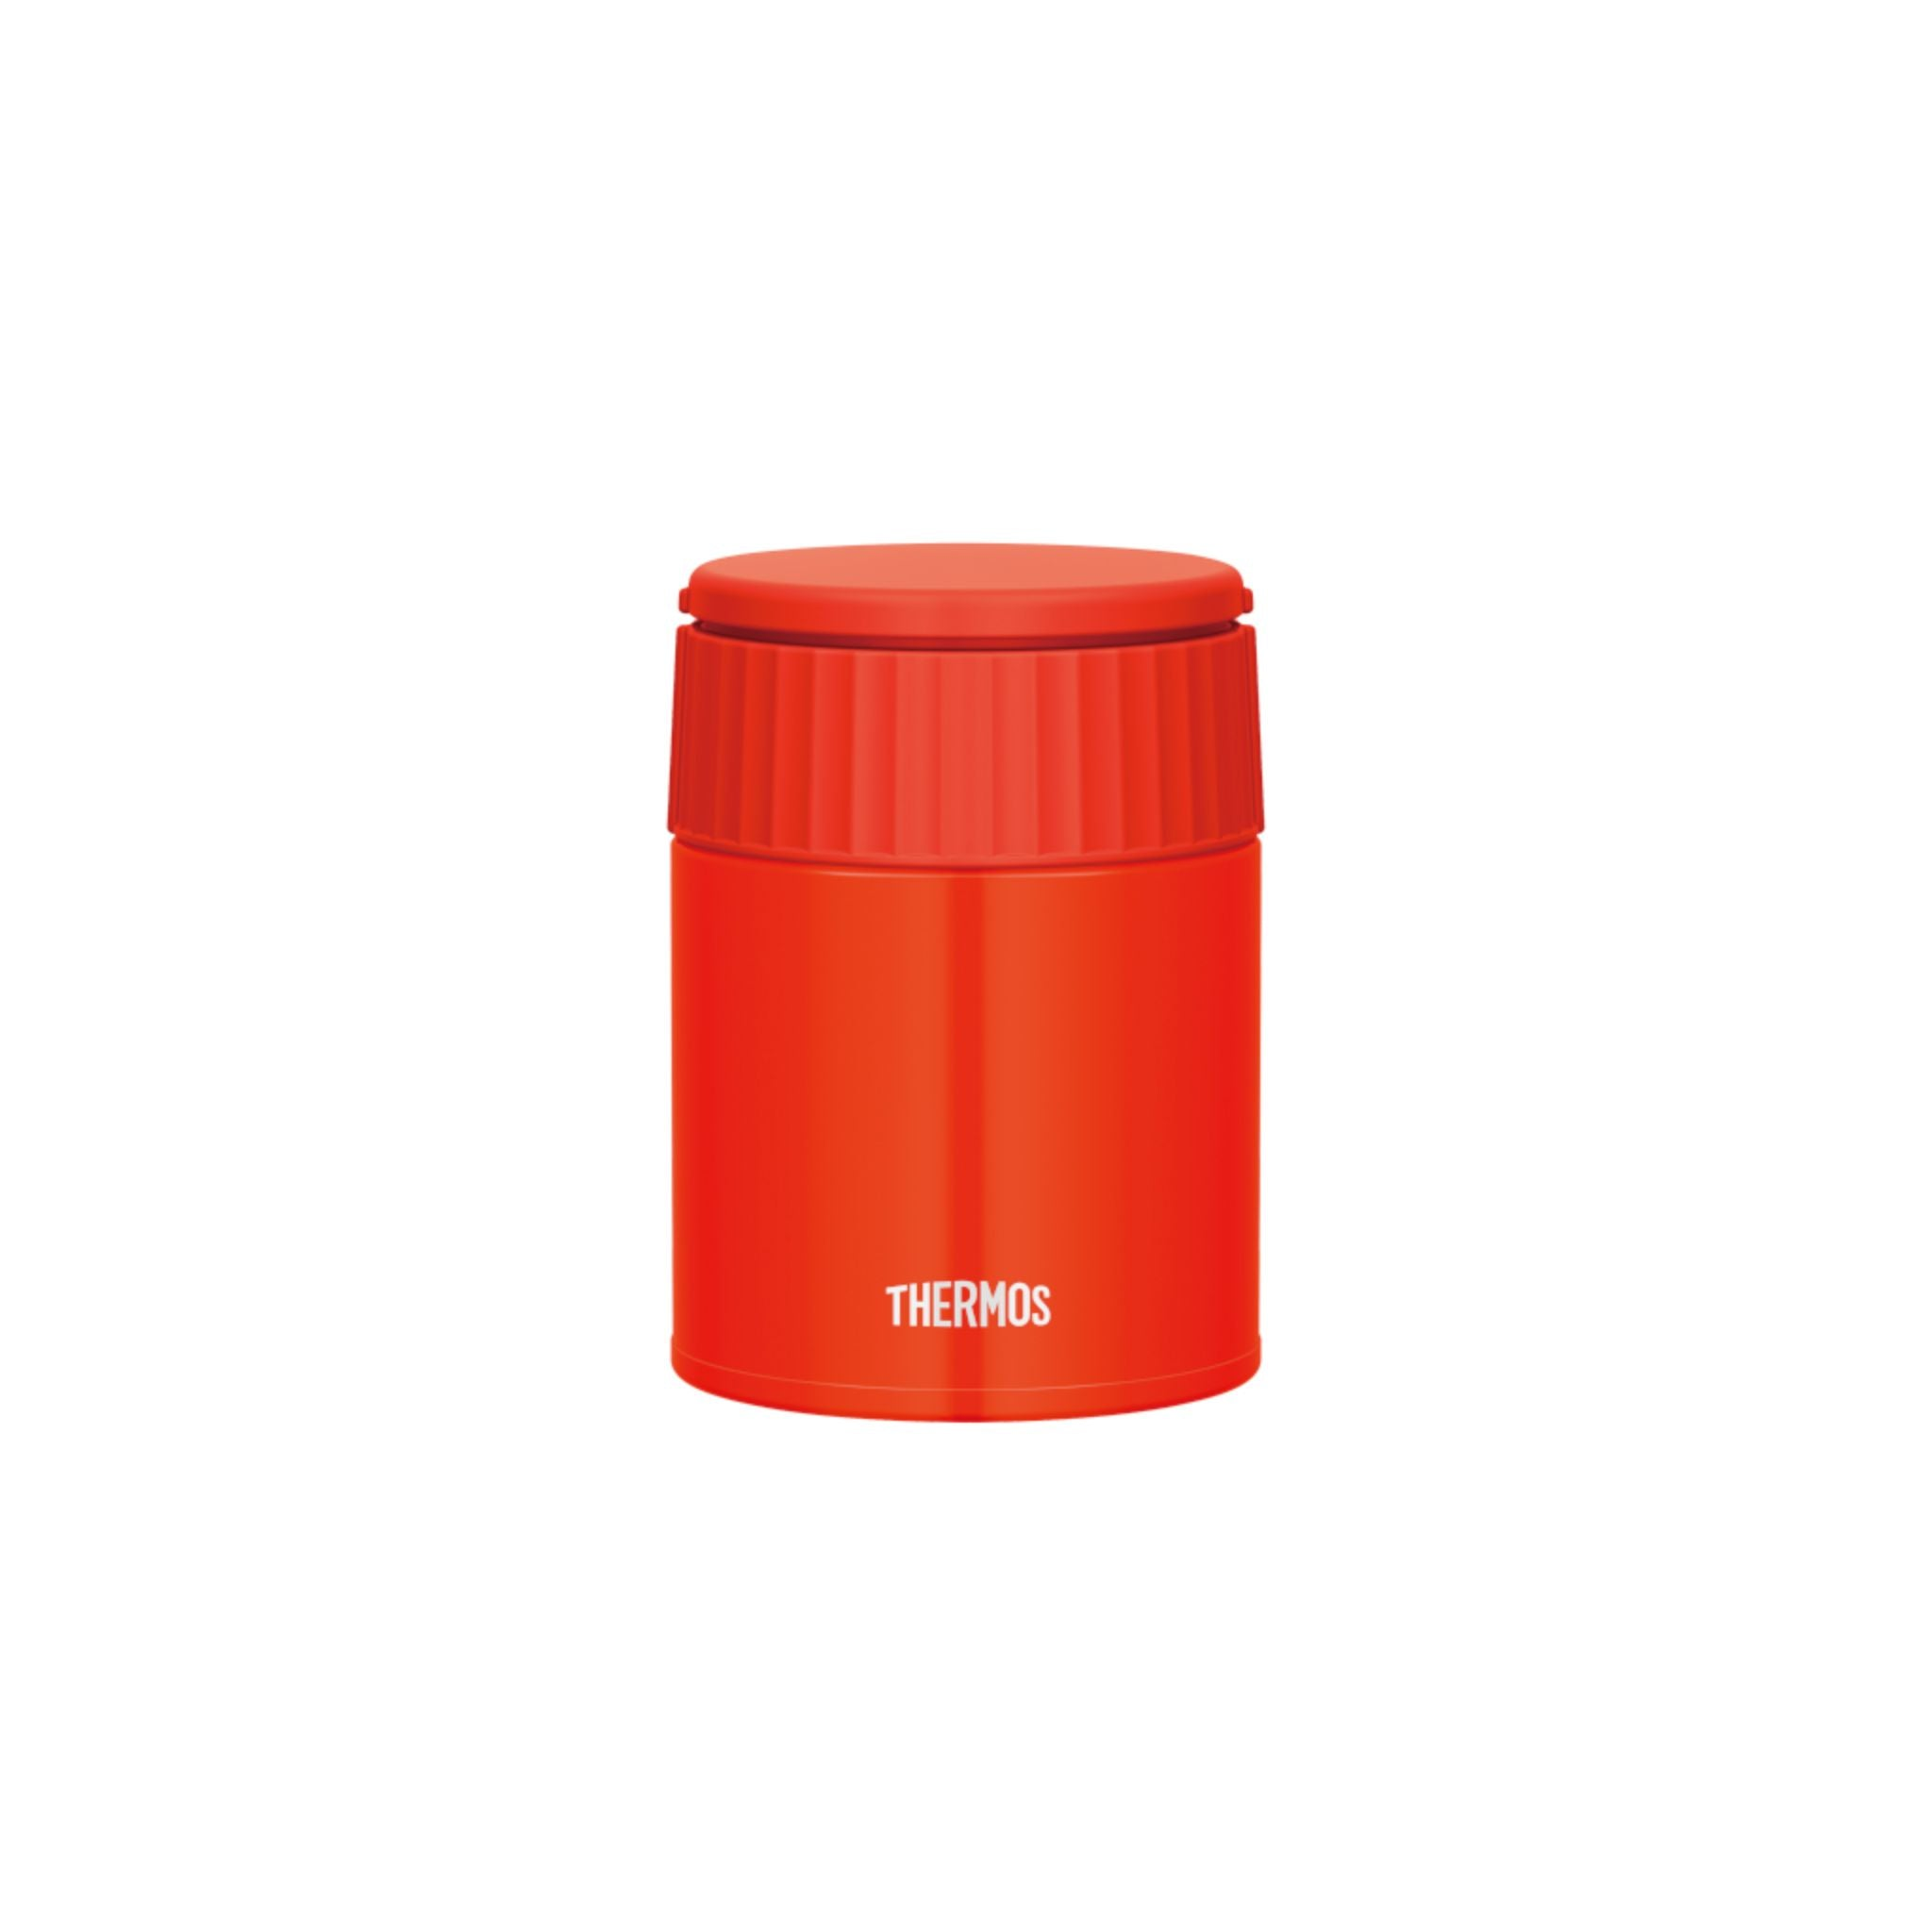 Thermos 0.4L Stainless Steel Vacuum Insulation Food Jar - Tomato